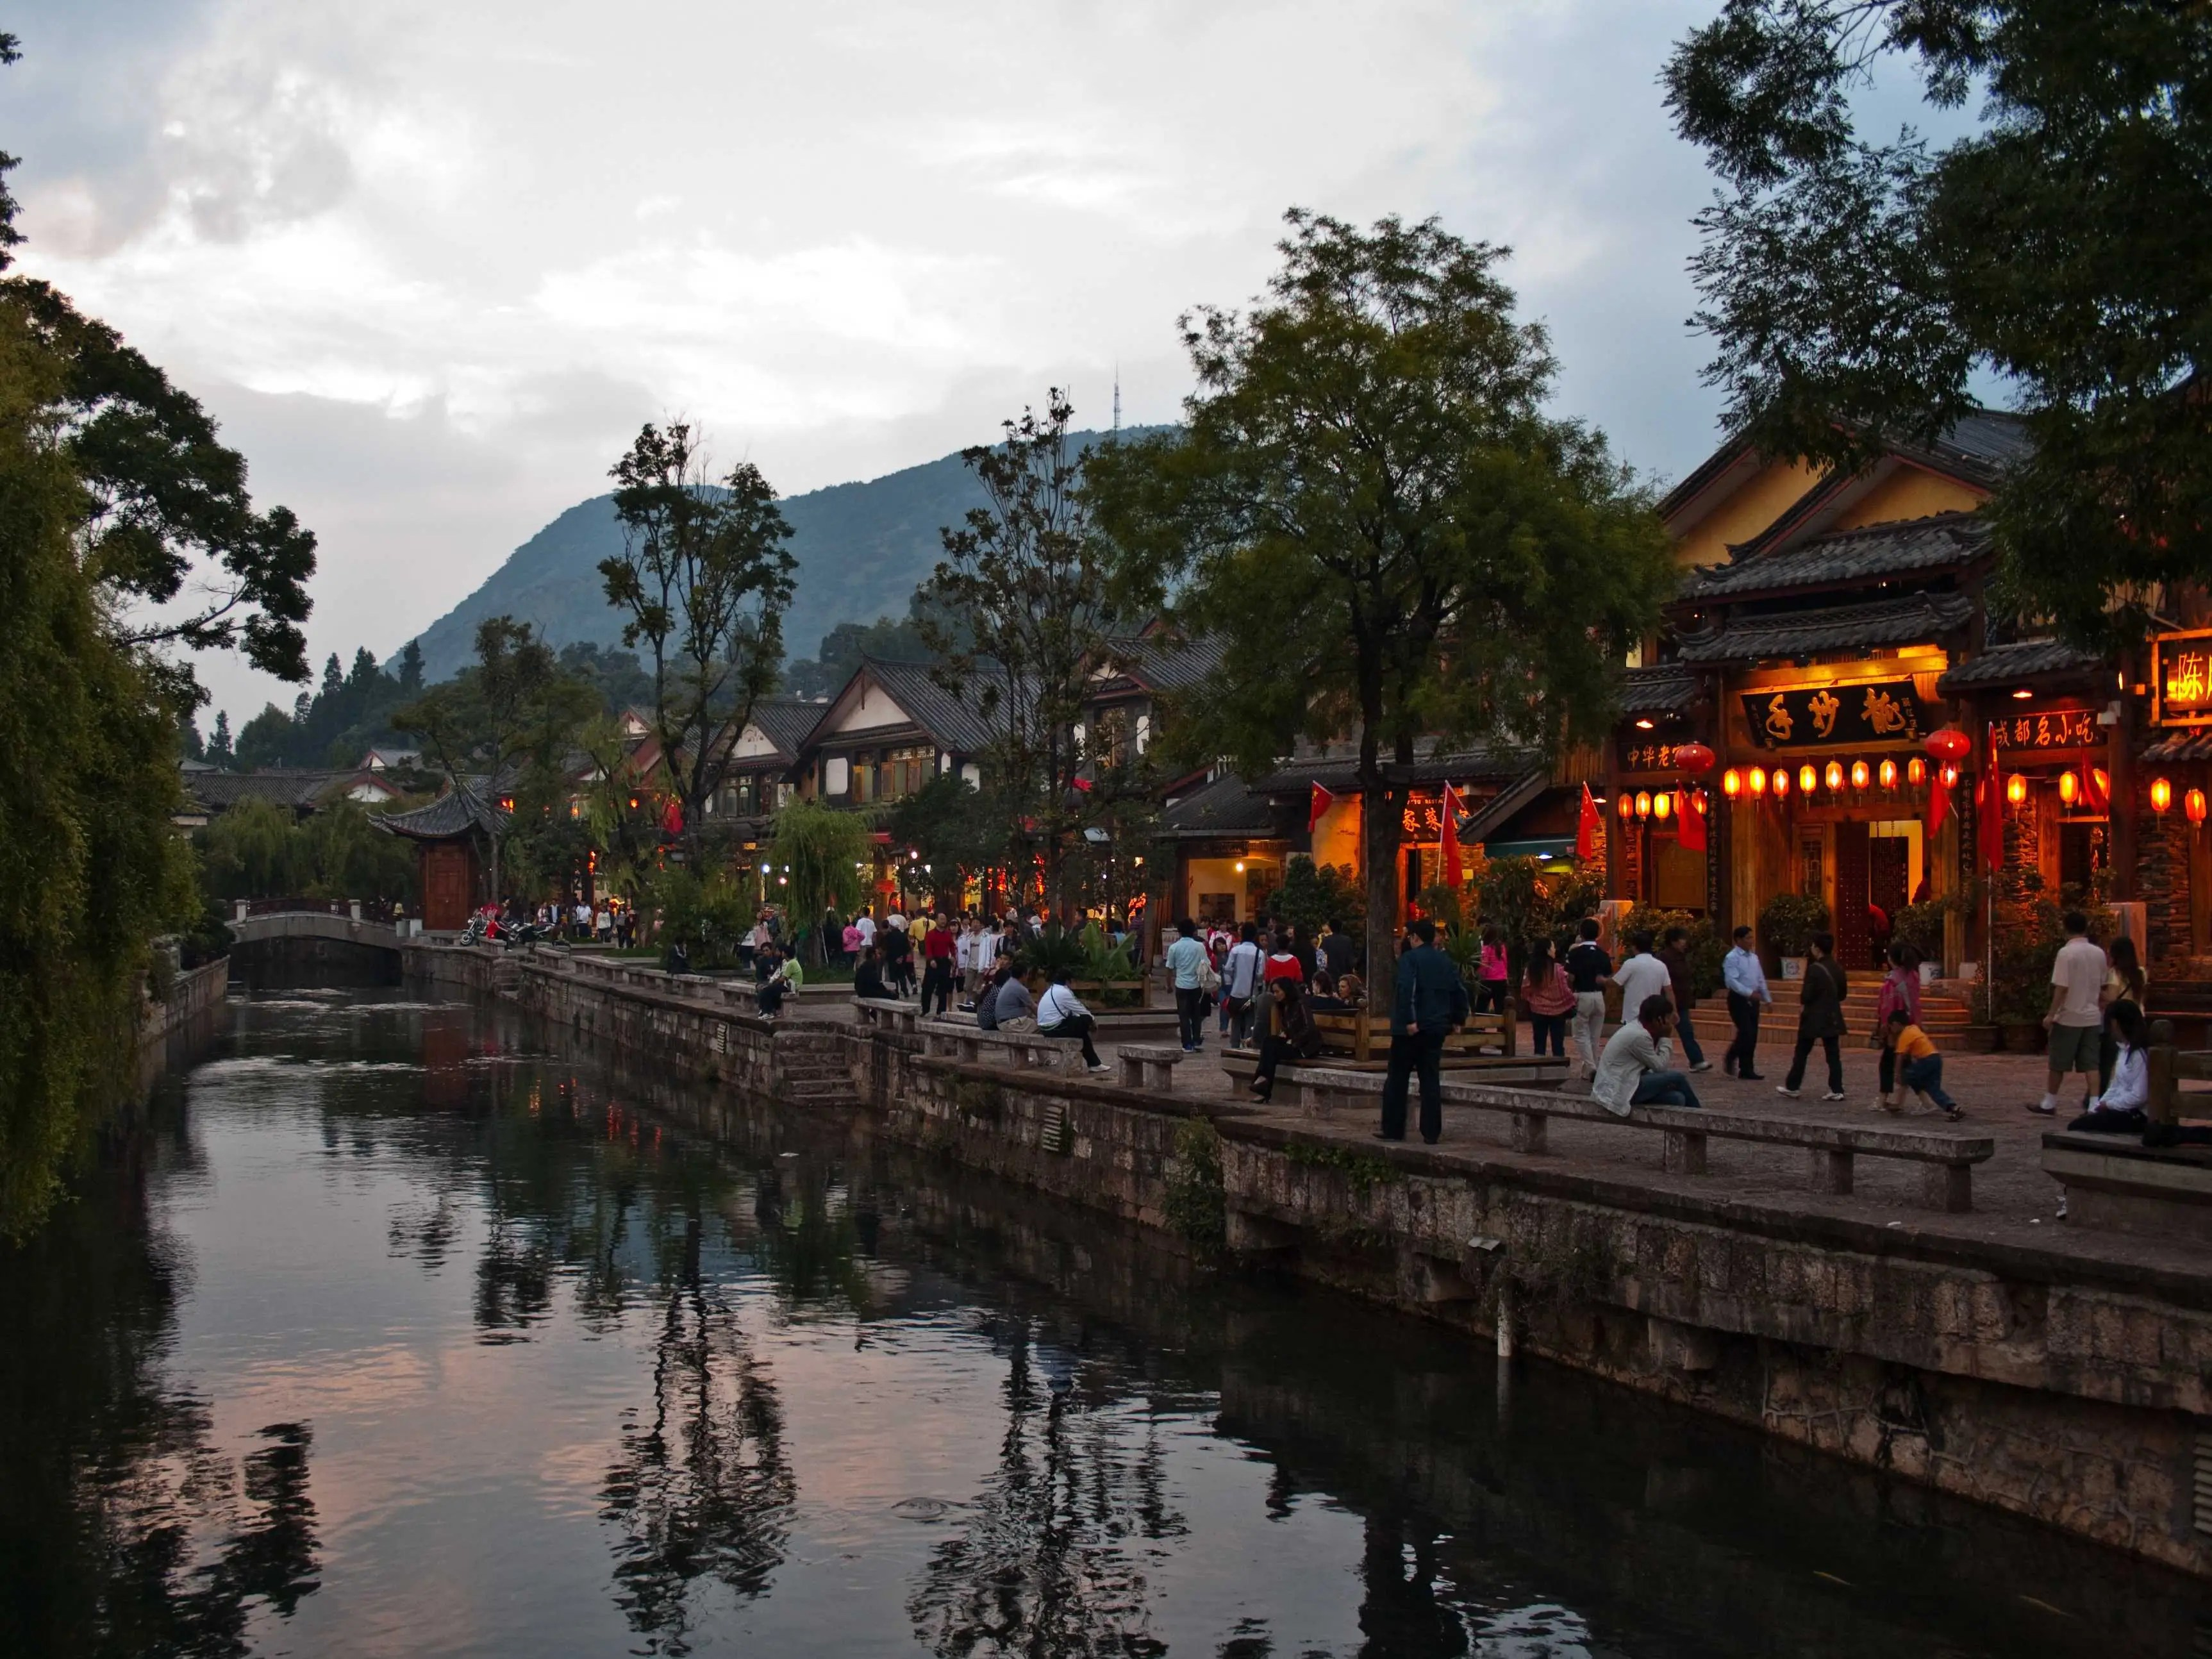 The Old Town of Lijiang in Yunan, China, established in the 13th century, still maintains its historic landscape and a complex, ancient water-supply system, which you can still see functioning today.